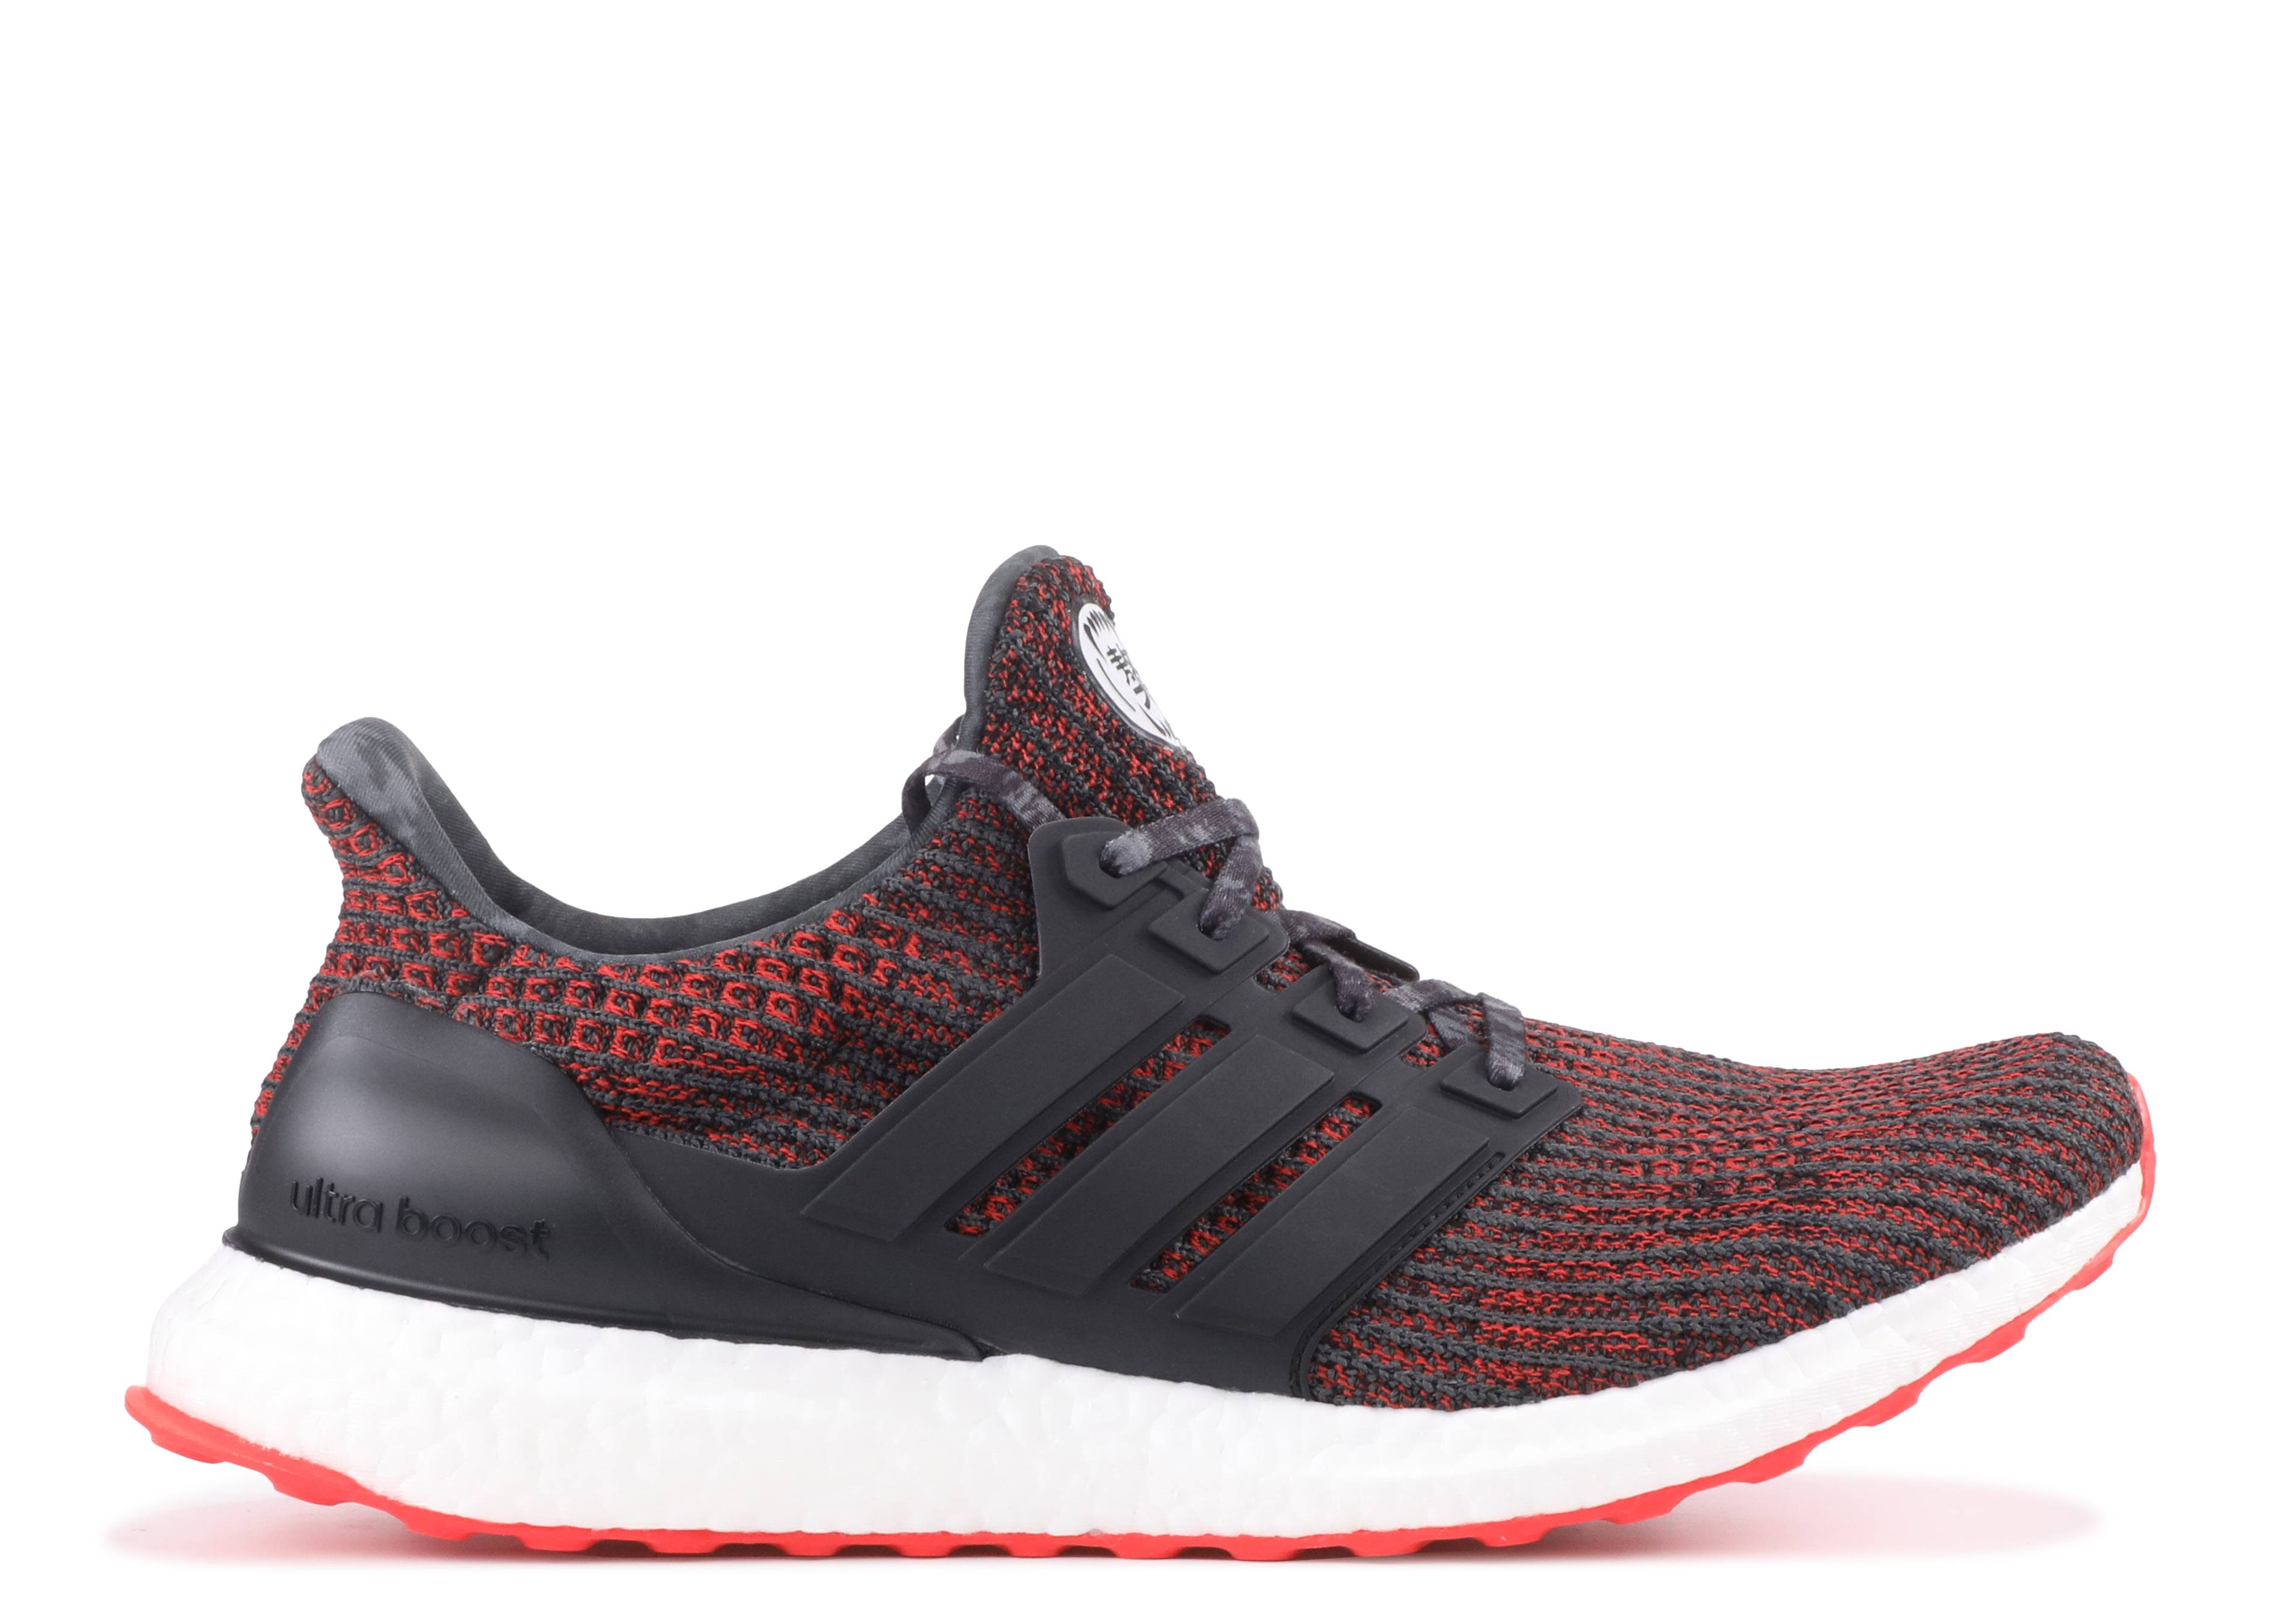 Buy Adidas Cheap Ultra Boost 4.0 Clima Shoes Sale 2018